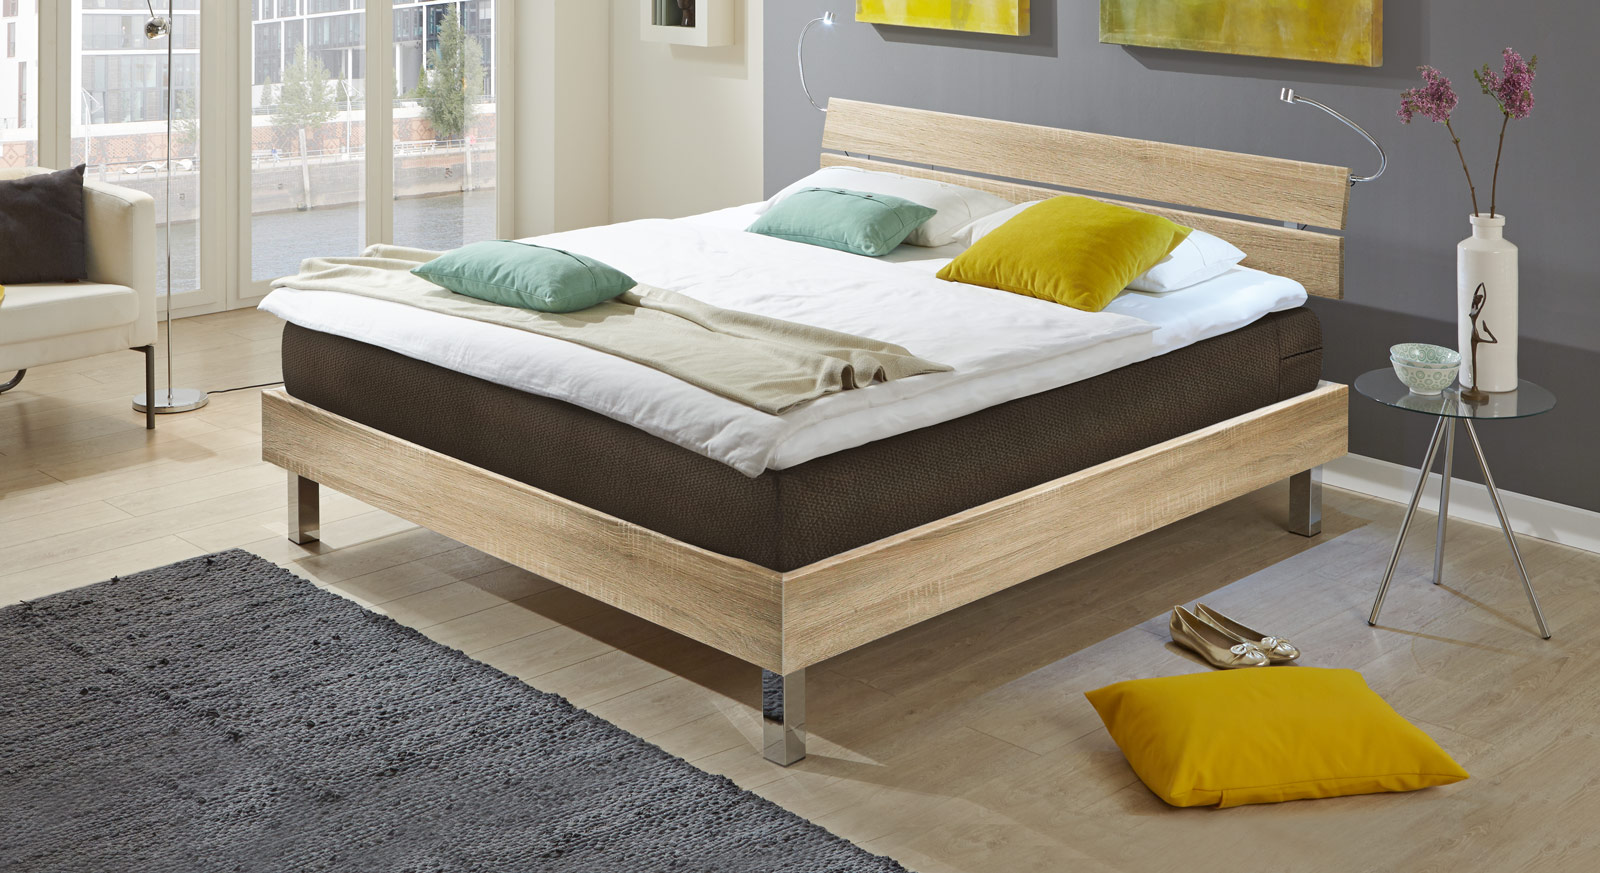 boxspringbett mit geteiltem kopfteil green bay. Black Bedroom Furniture Sets. Home Design Ideas